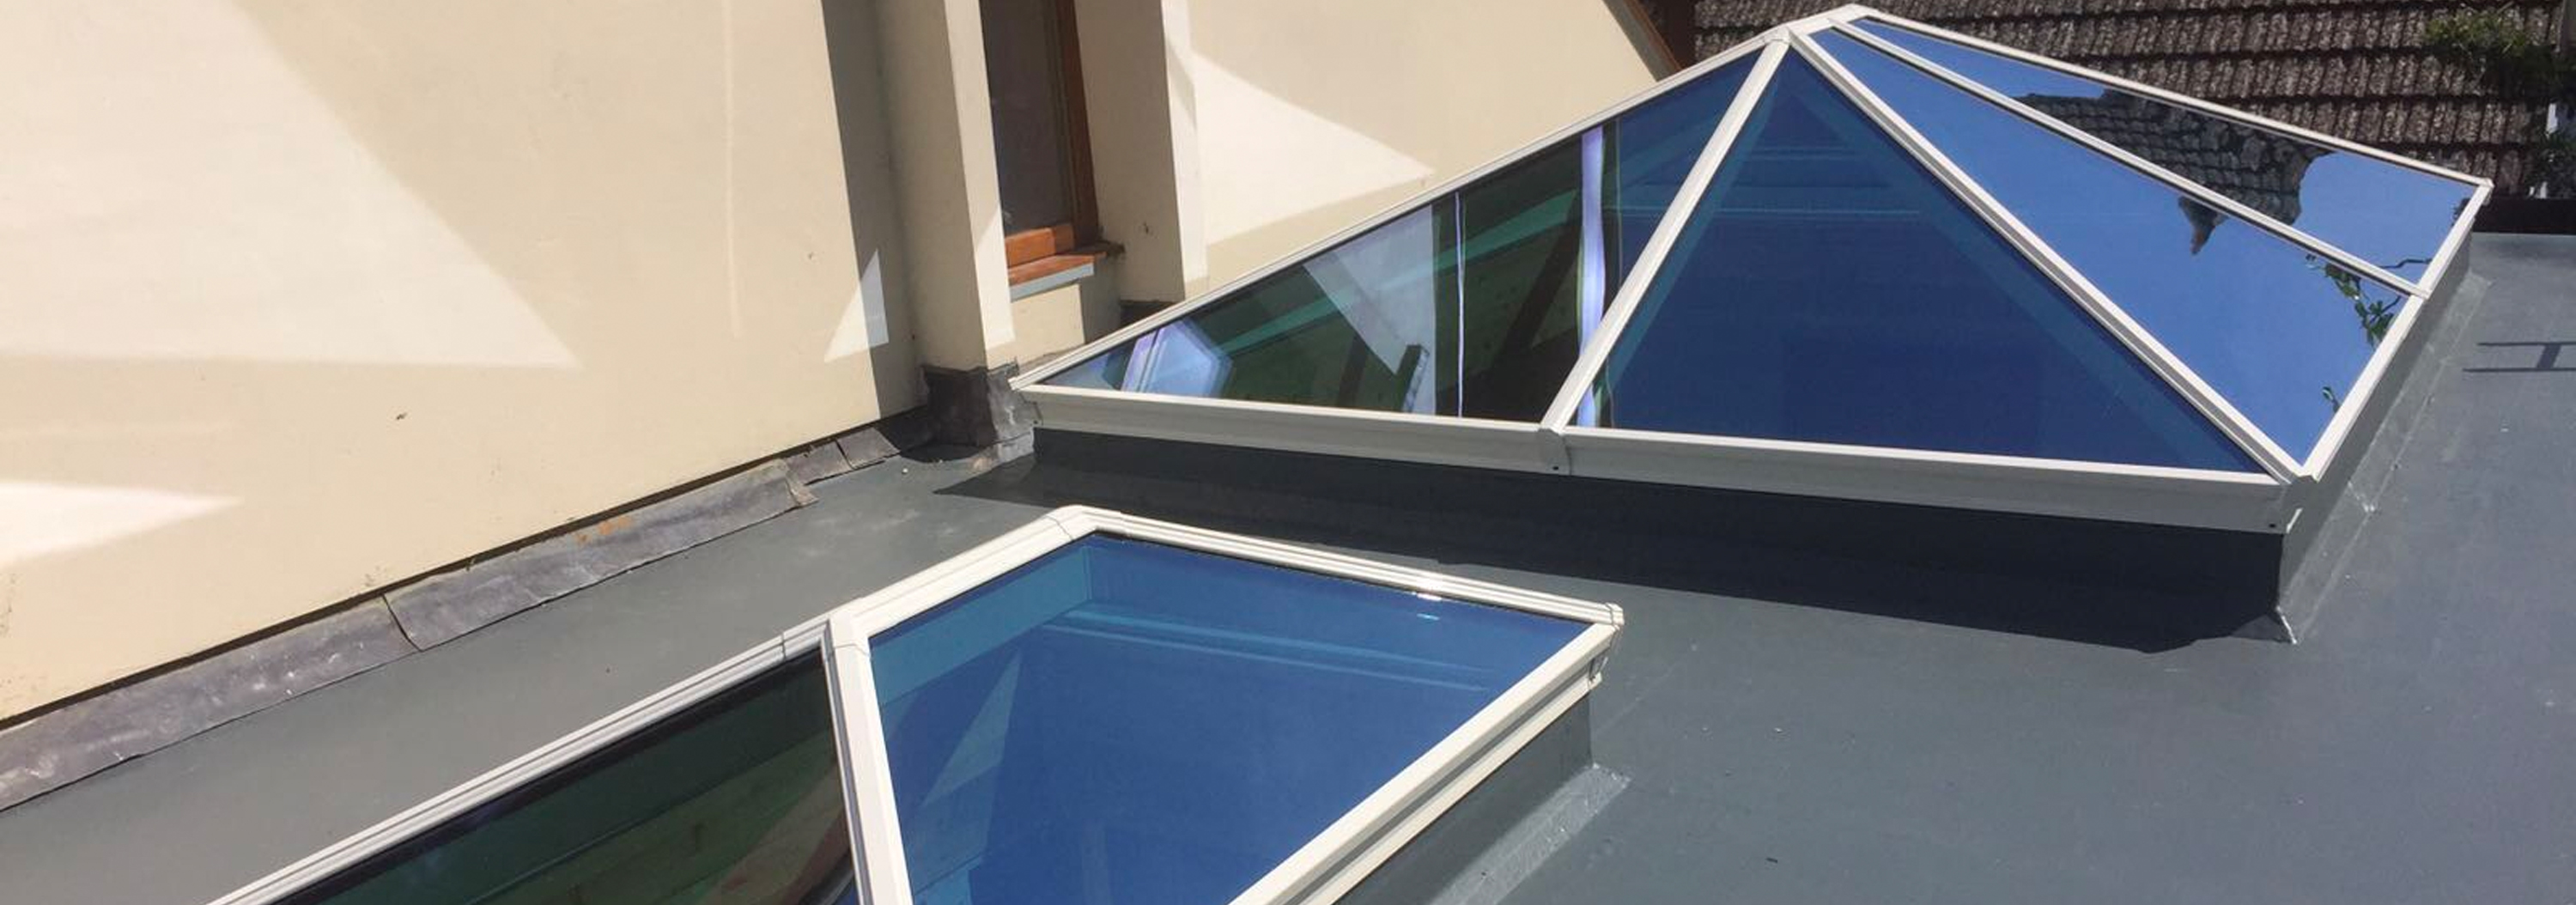 Bespoke Roof Lanterns